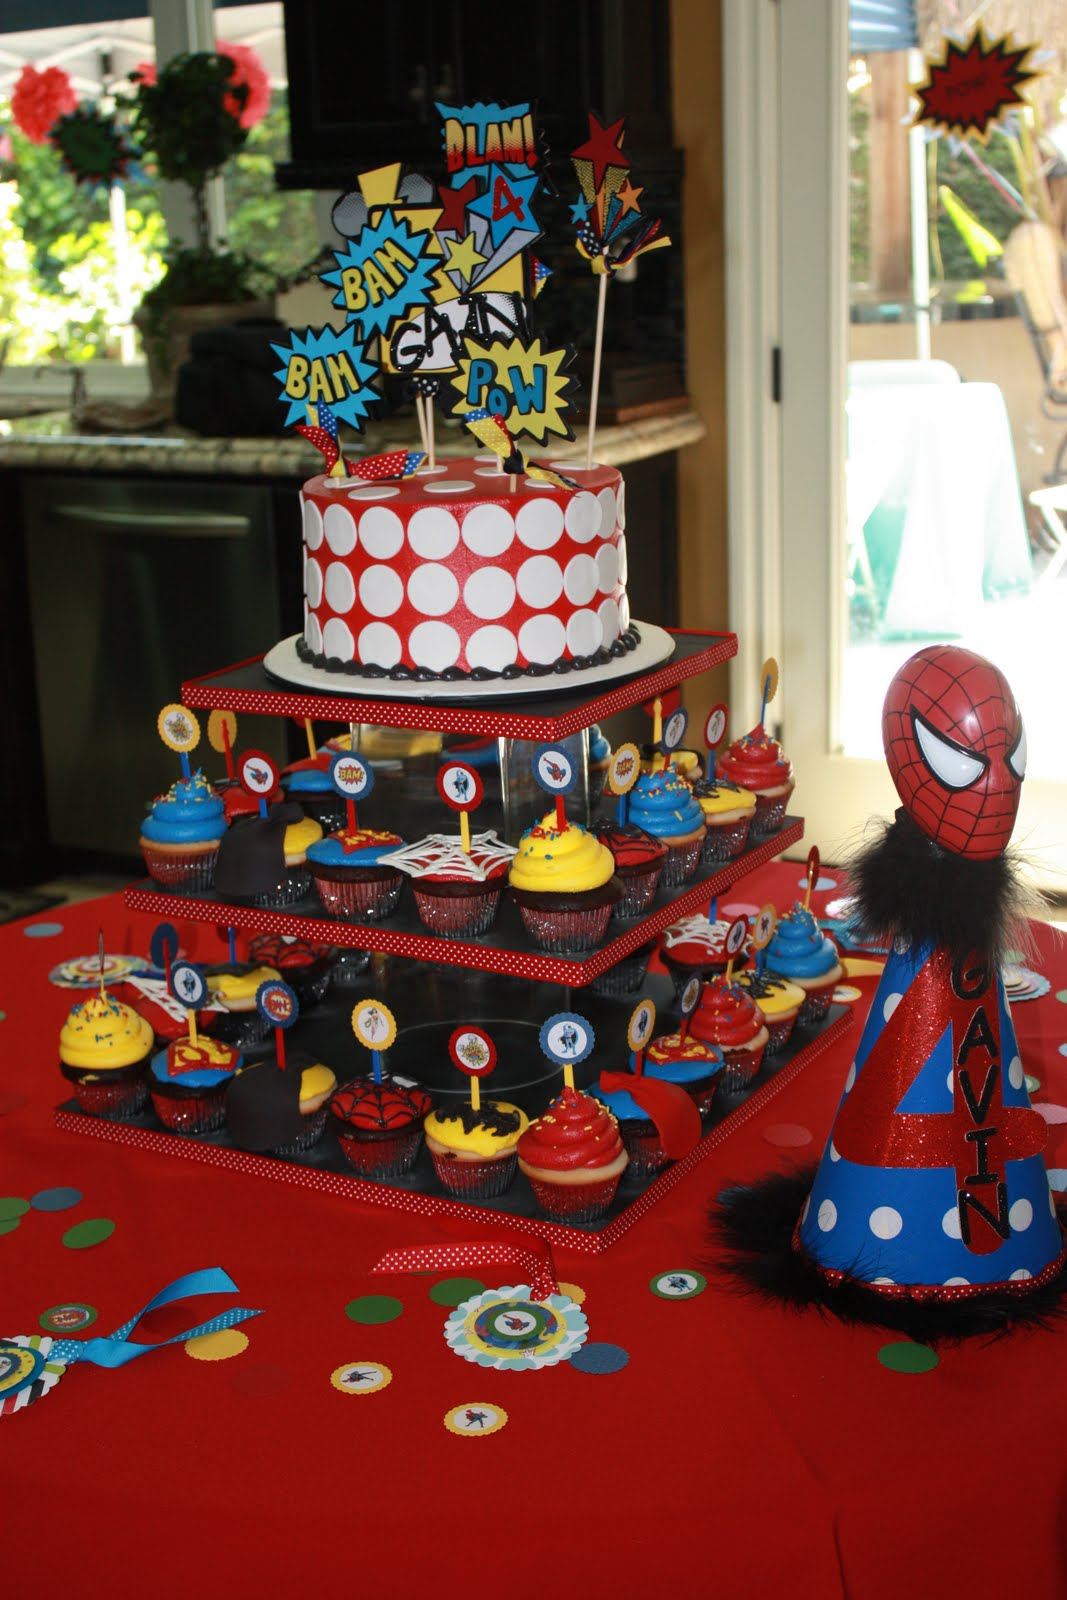 Real Parties} Gavin's 4th Birthday Superhero Party - SouthernBelle'